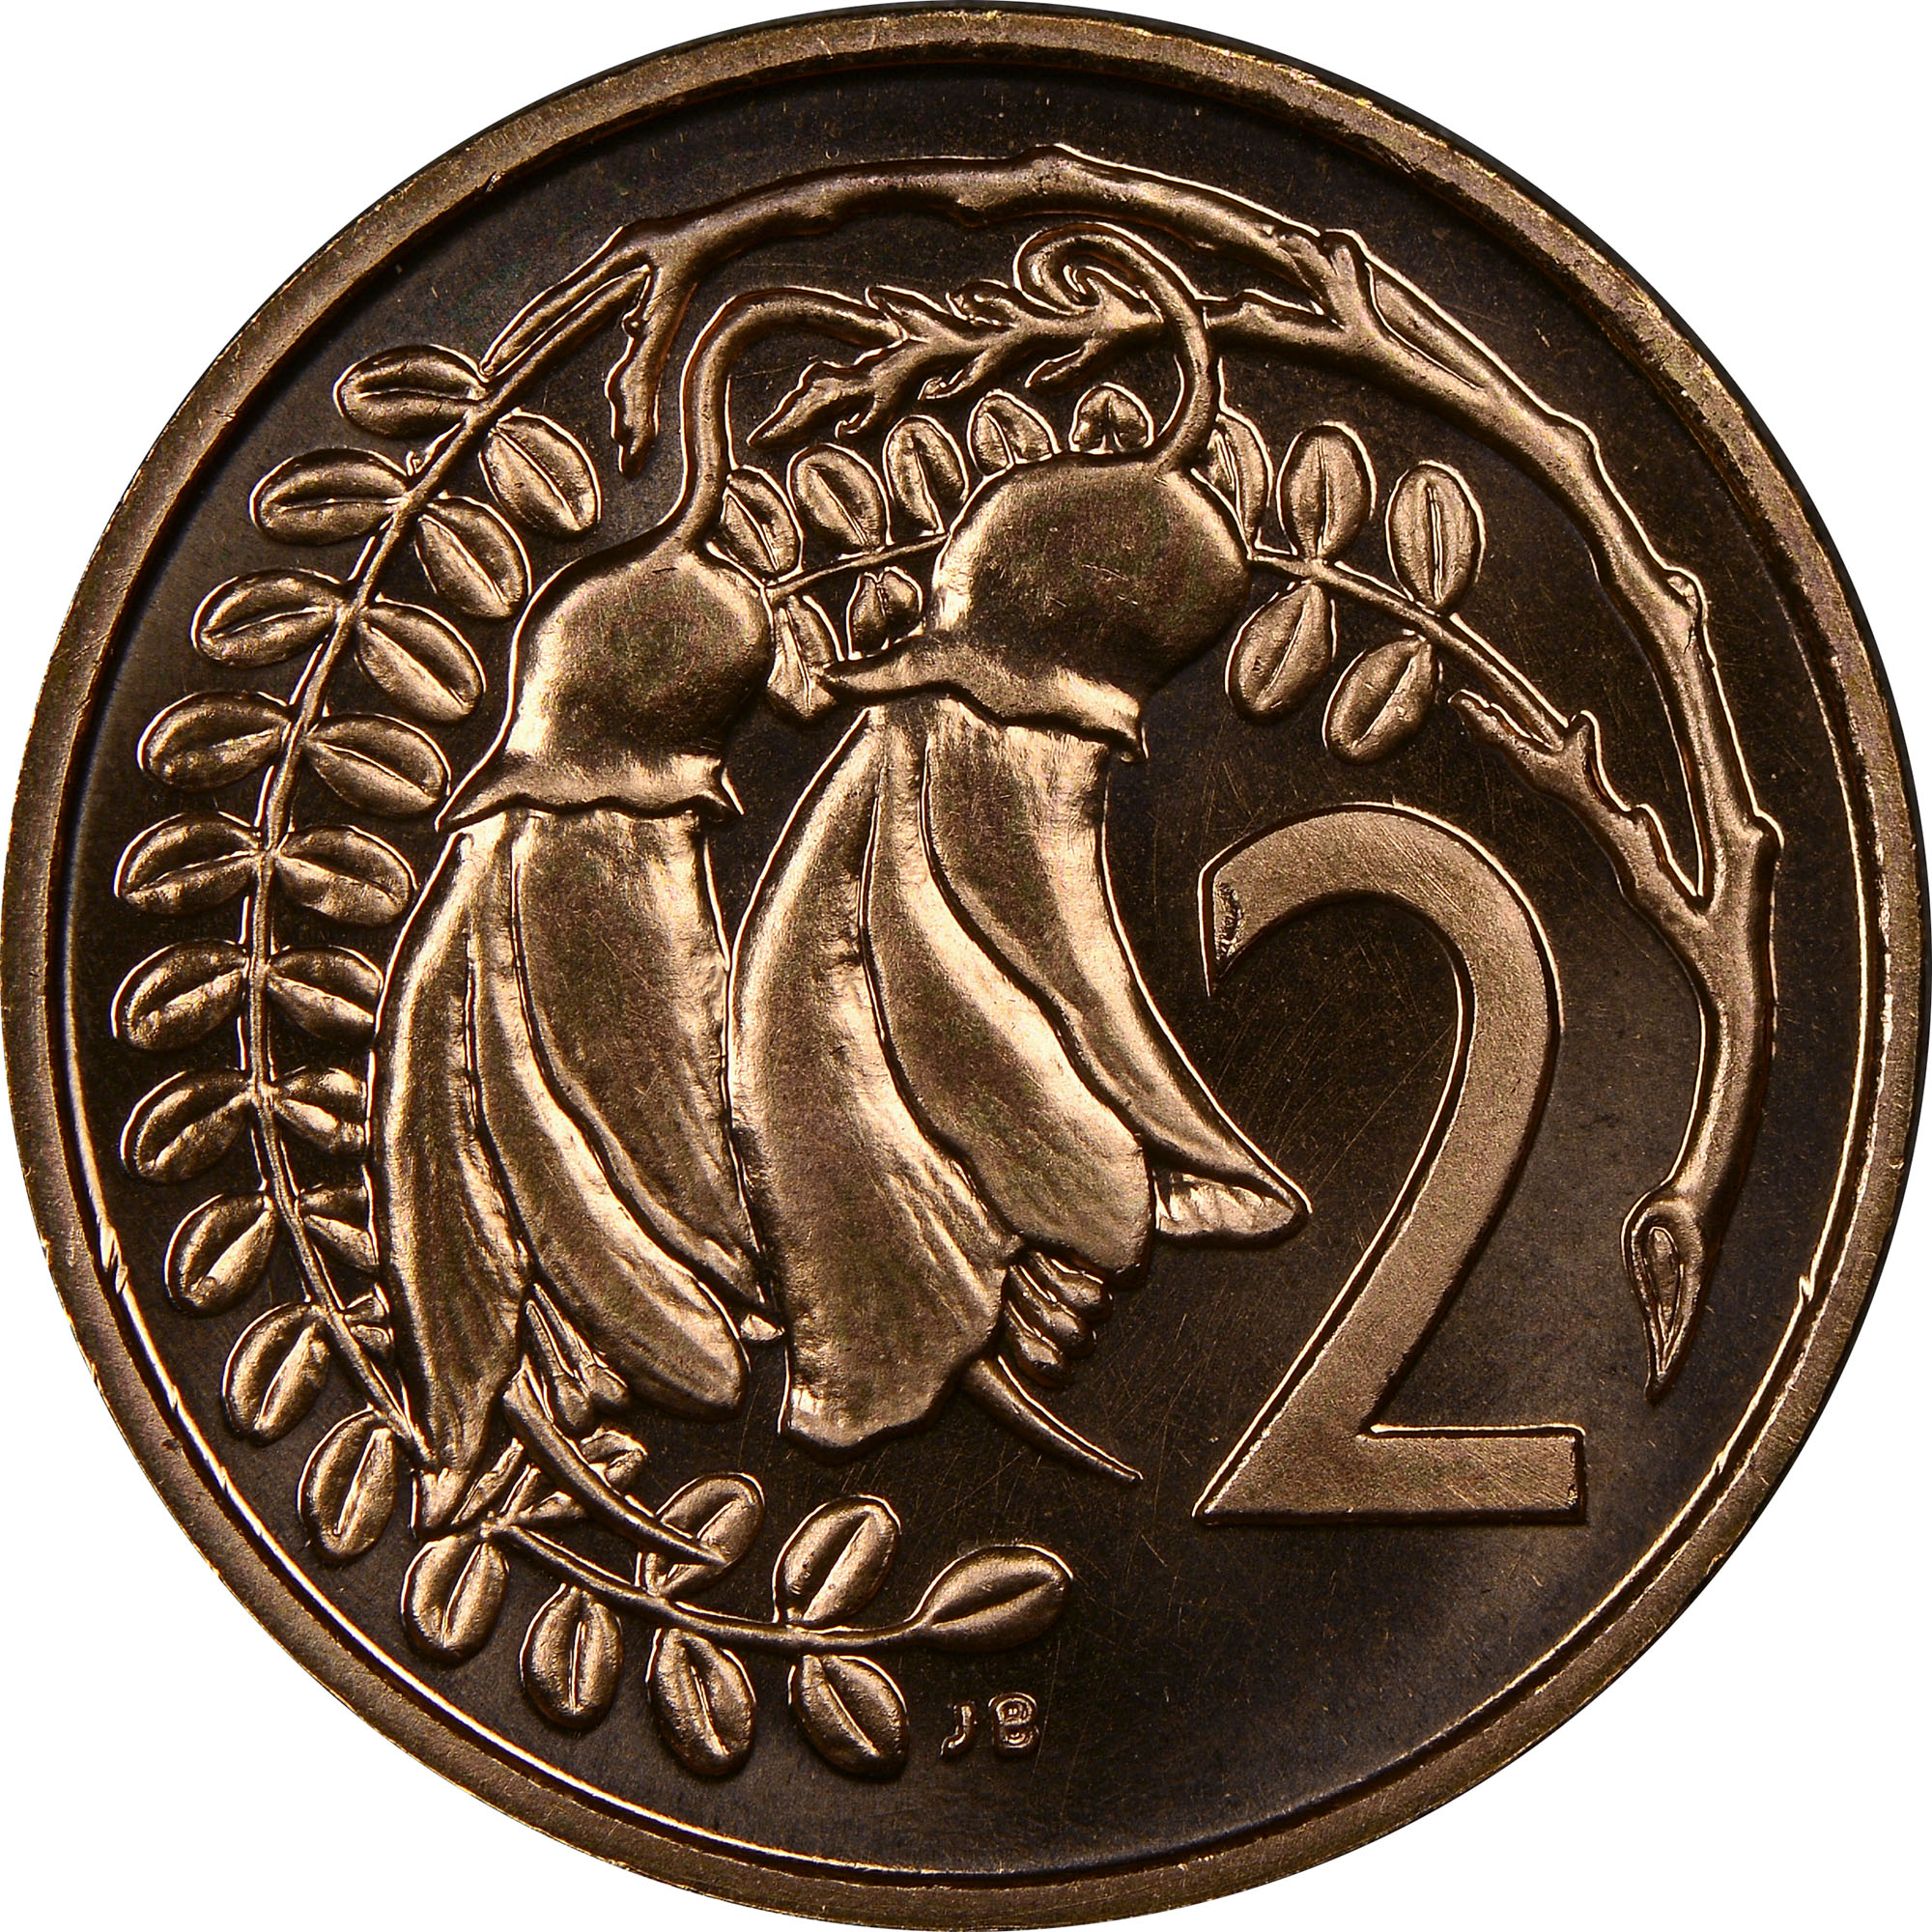 New zealand 20 cents km 36. 1 prices & values | ngc.